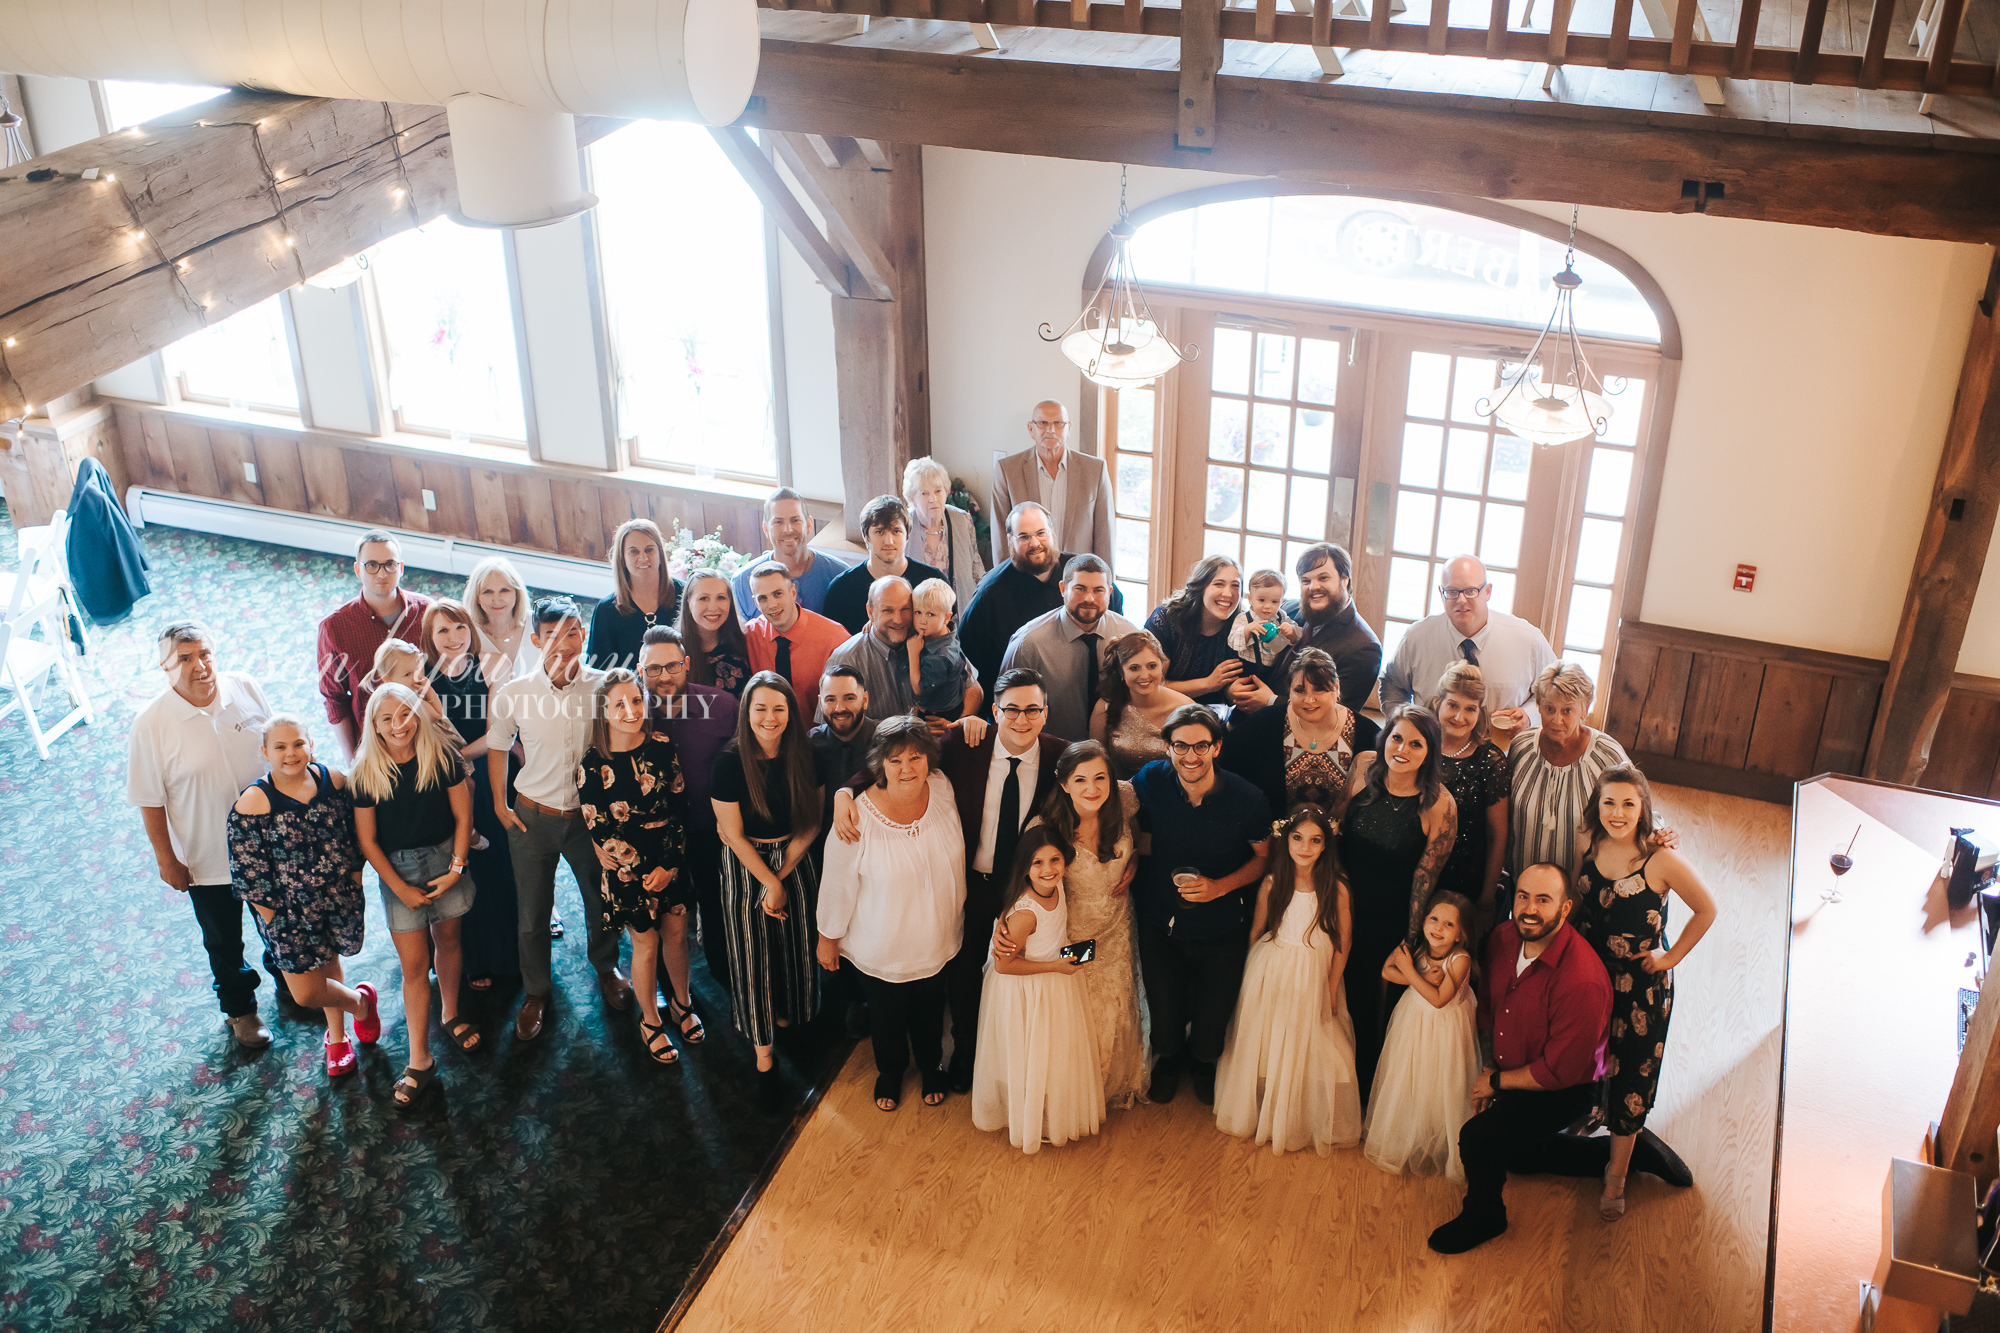 Chynna and John Wedding 05-18-2019 SLY Photography-127.jpg